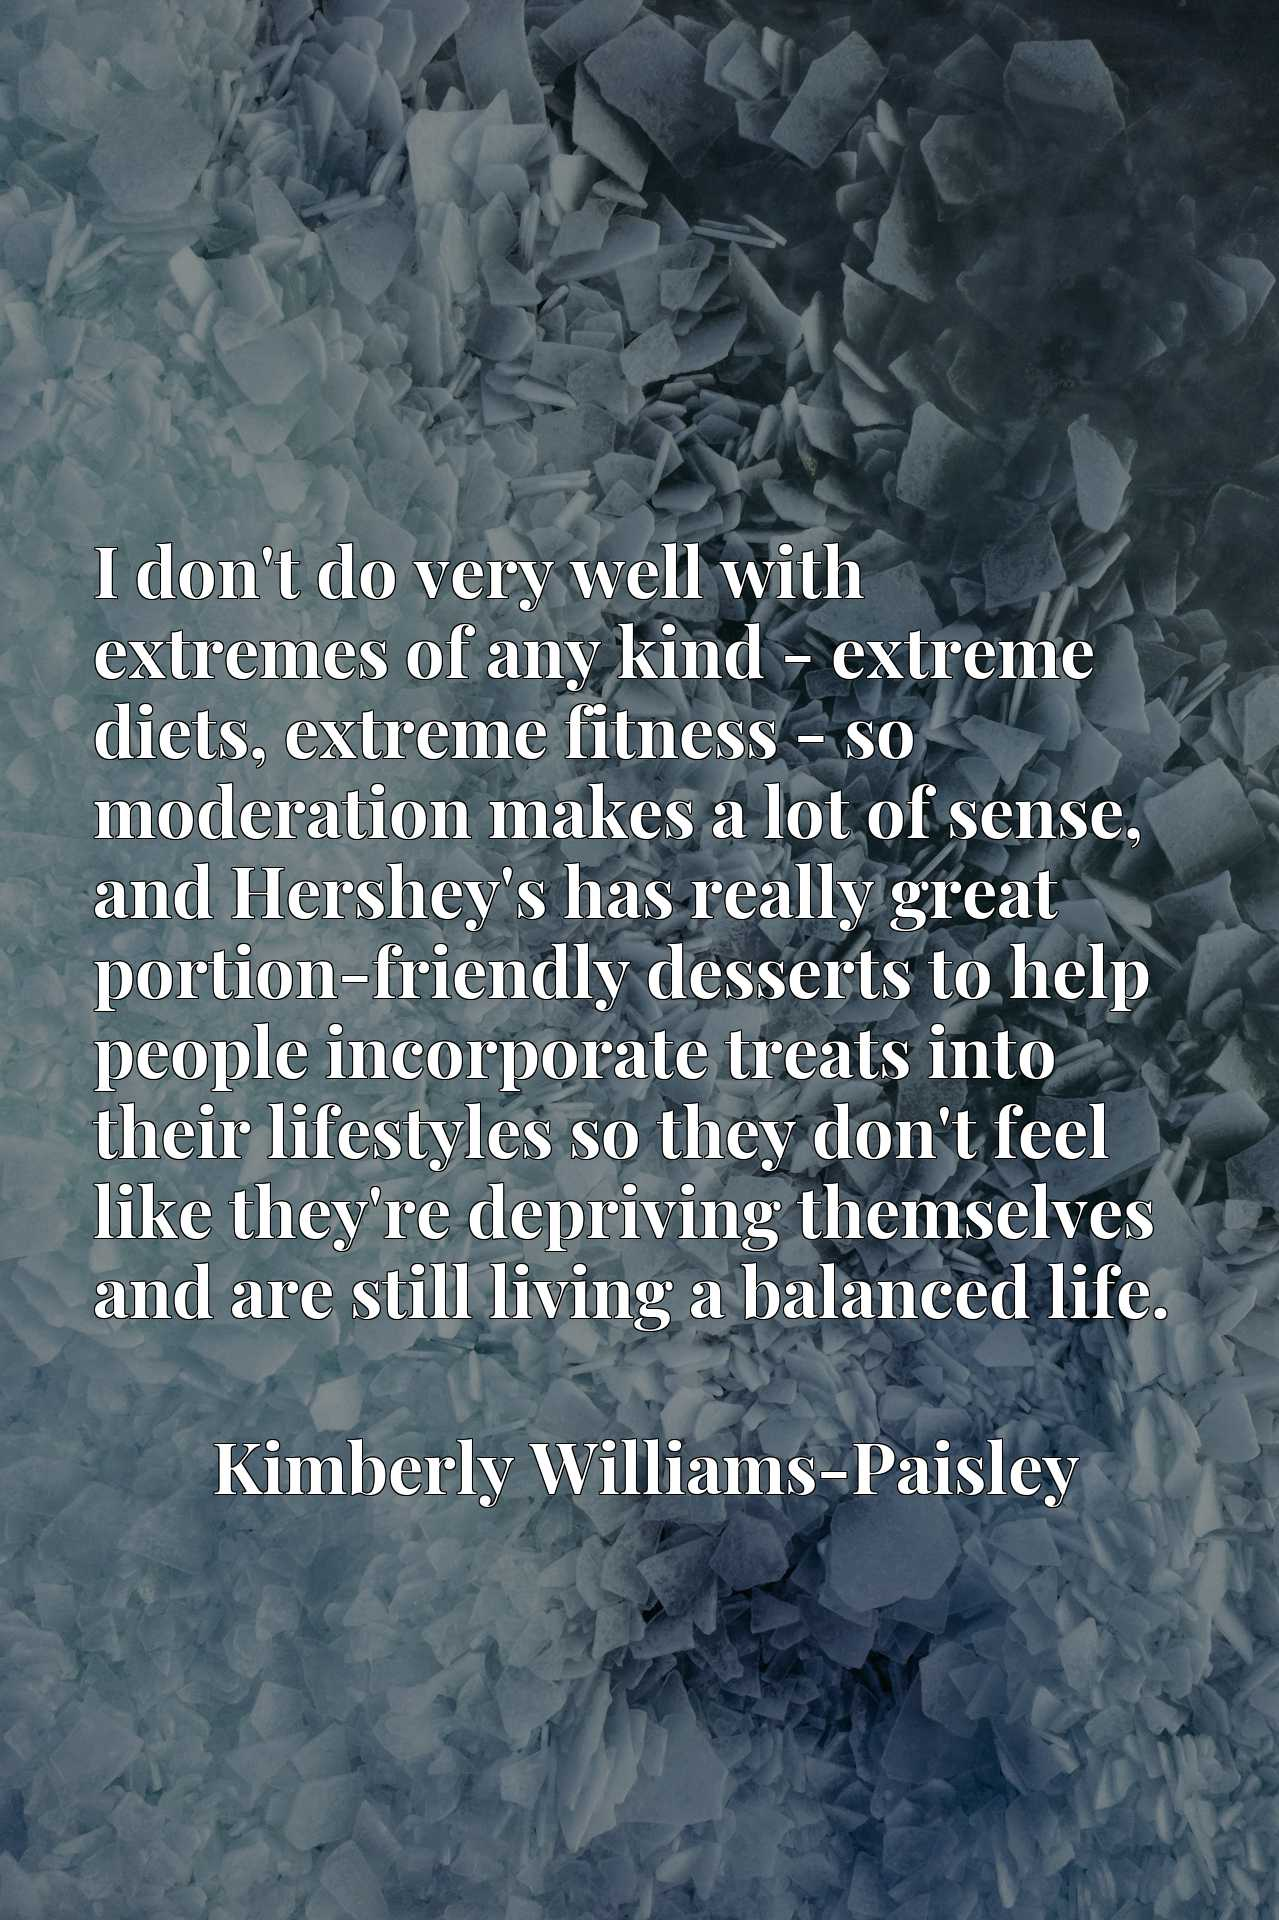 I don't do very well with extremes of any kind - extreme diets, extreme fitness - so moderation makes a lot of sense, and Hershey's has really great portion-friendly desserts to help people incorporate treats into their lifestyles so they don't feel like they're depriving themselves and are still living a balanced life.